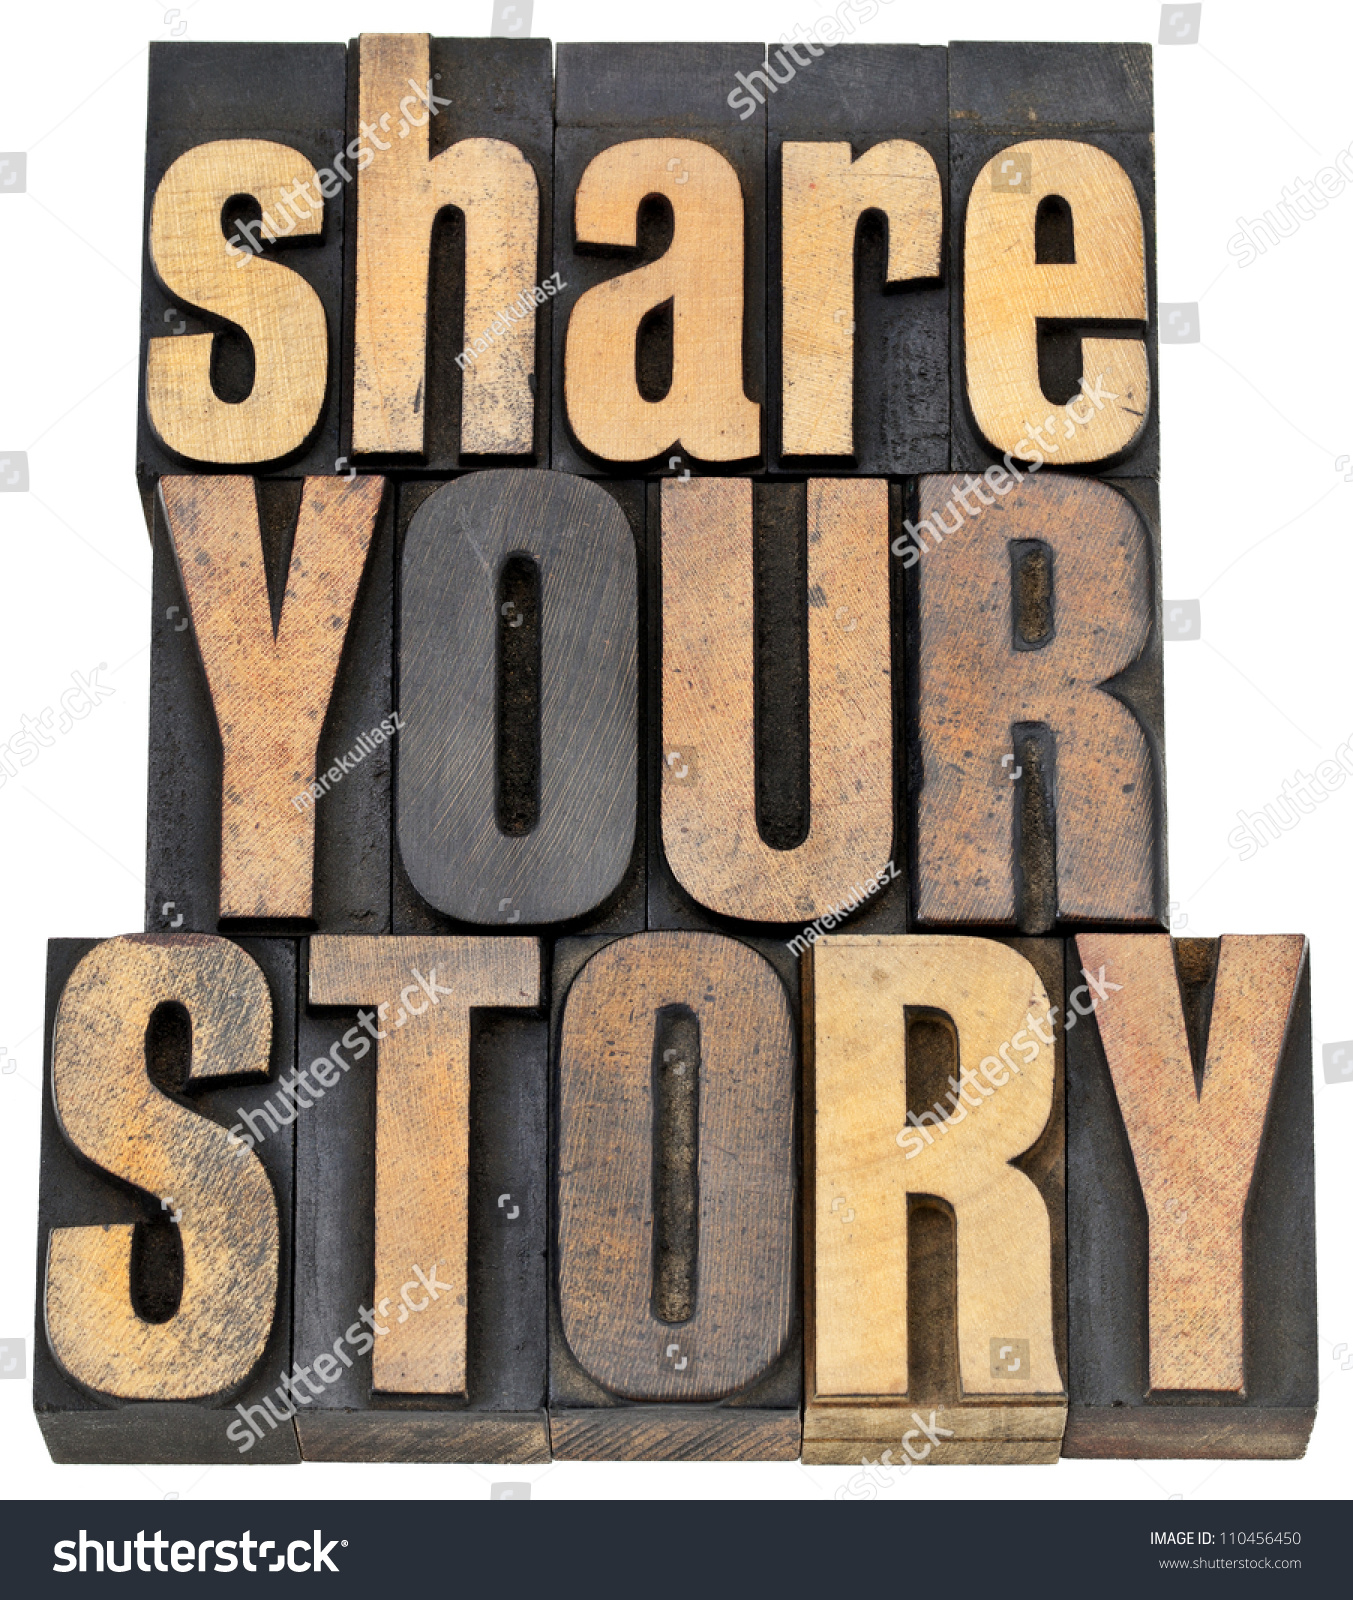 Share your story online